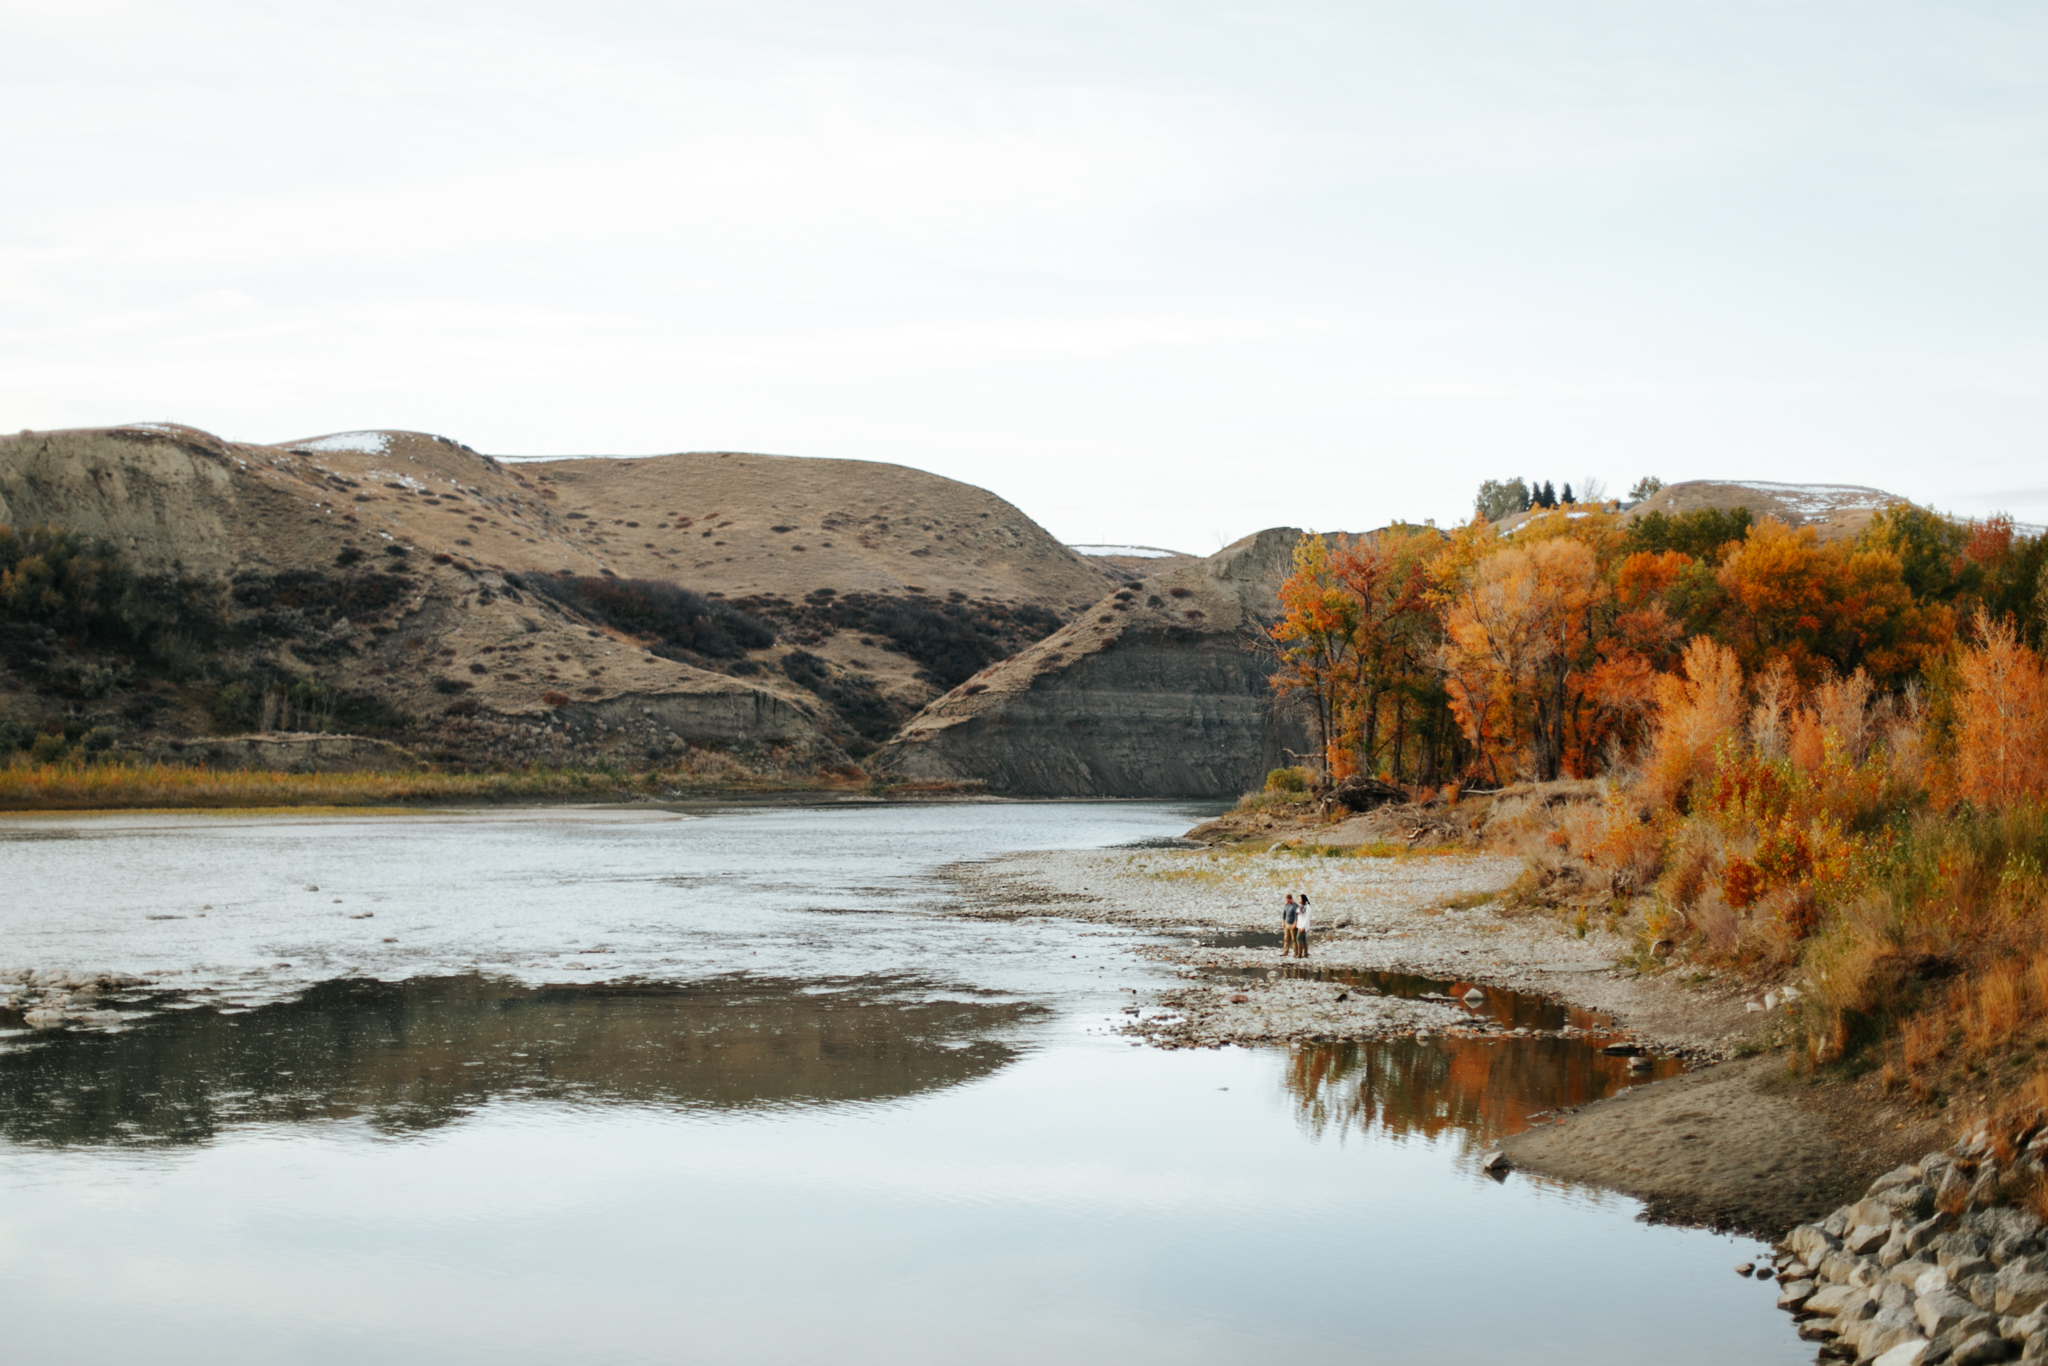 lethbridge-photographer-love-and-be-loved-photography-christy-bryan-fall-autumn-engagement-photo-image-picture-45.jpg